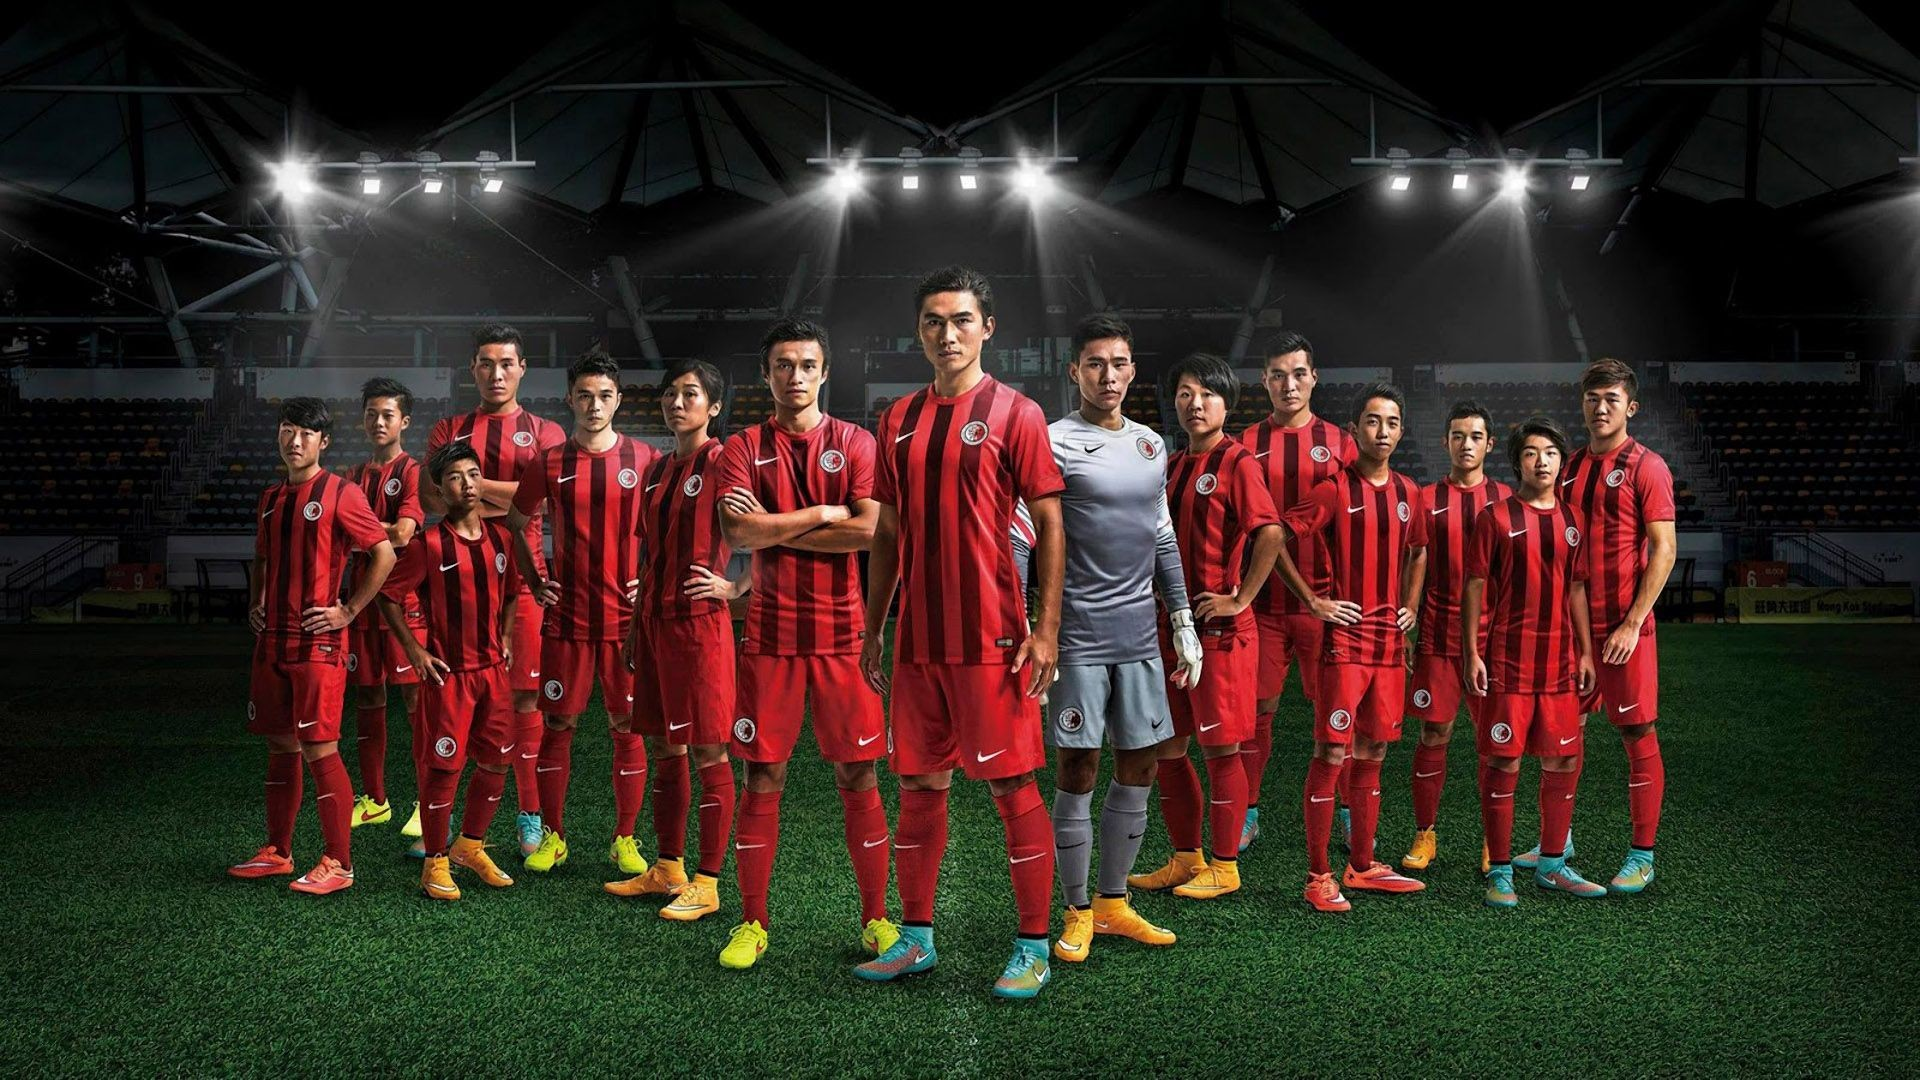 A Nike Soccer Cool Backgrounds Wallpapers